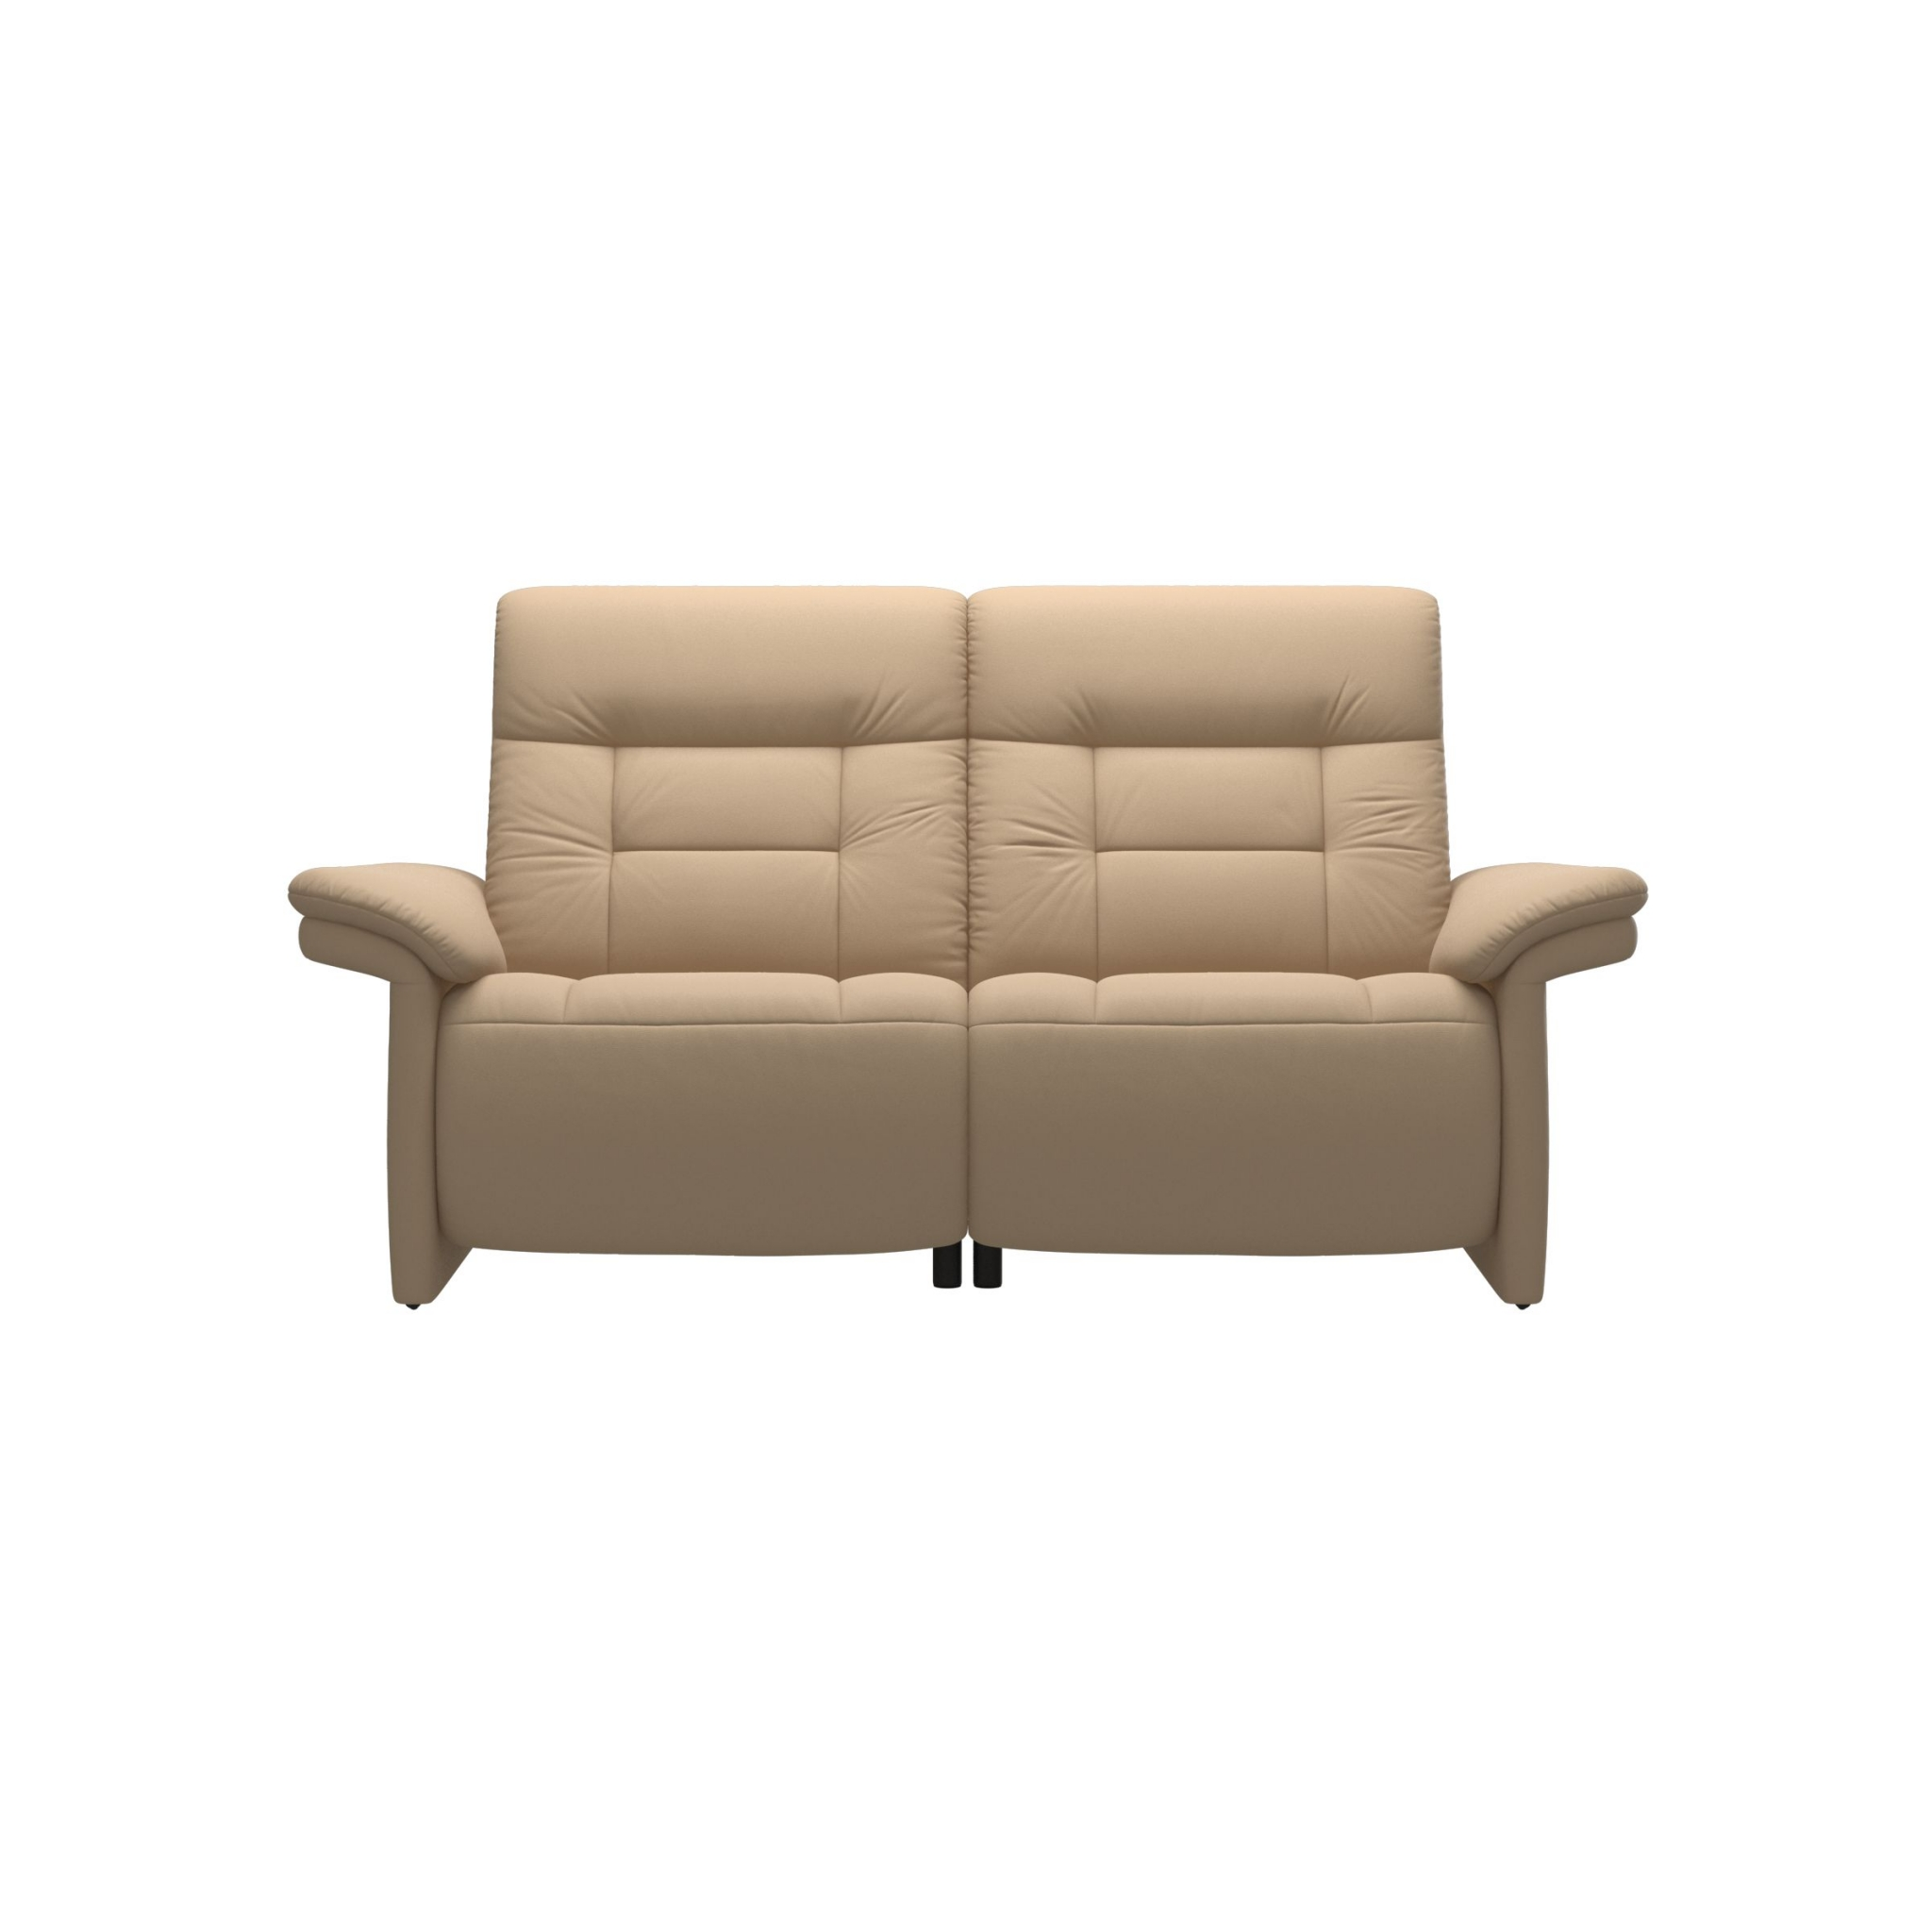 2 Seat Mary Sofa by Stressless